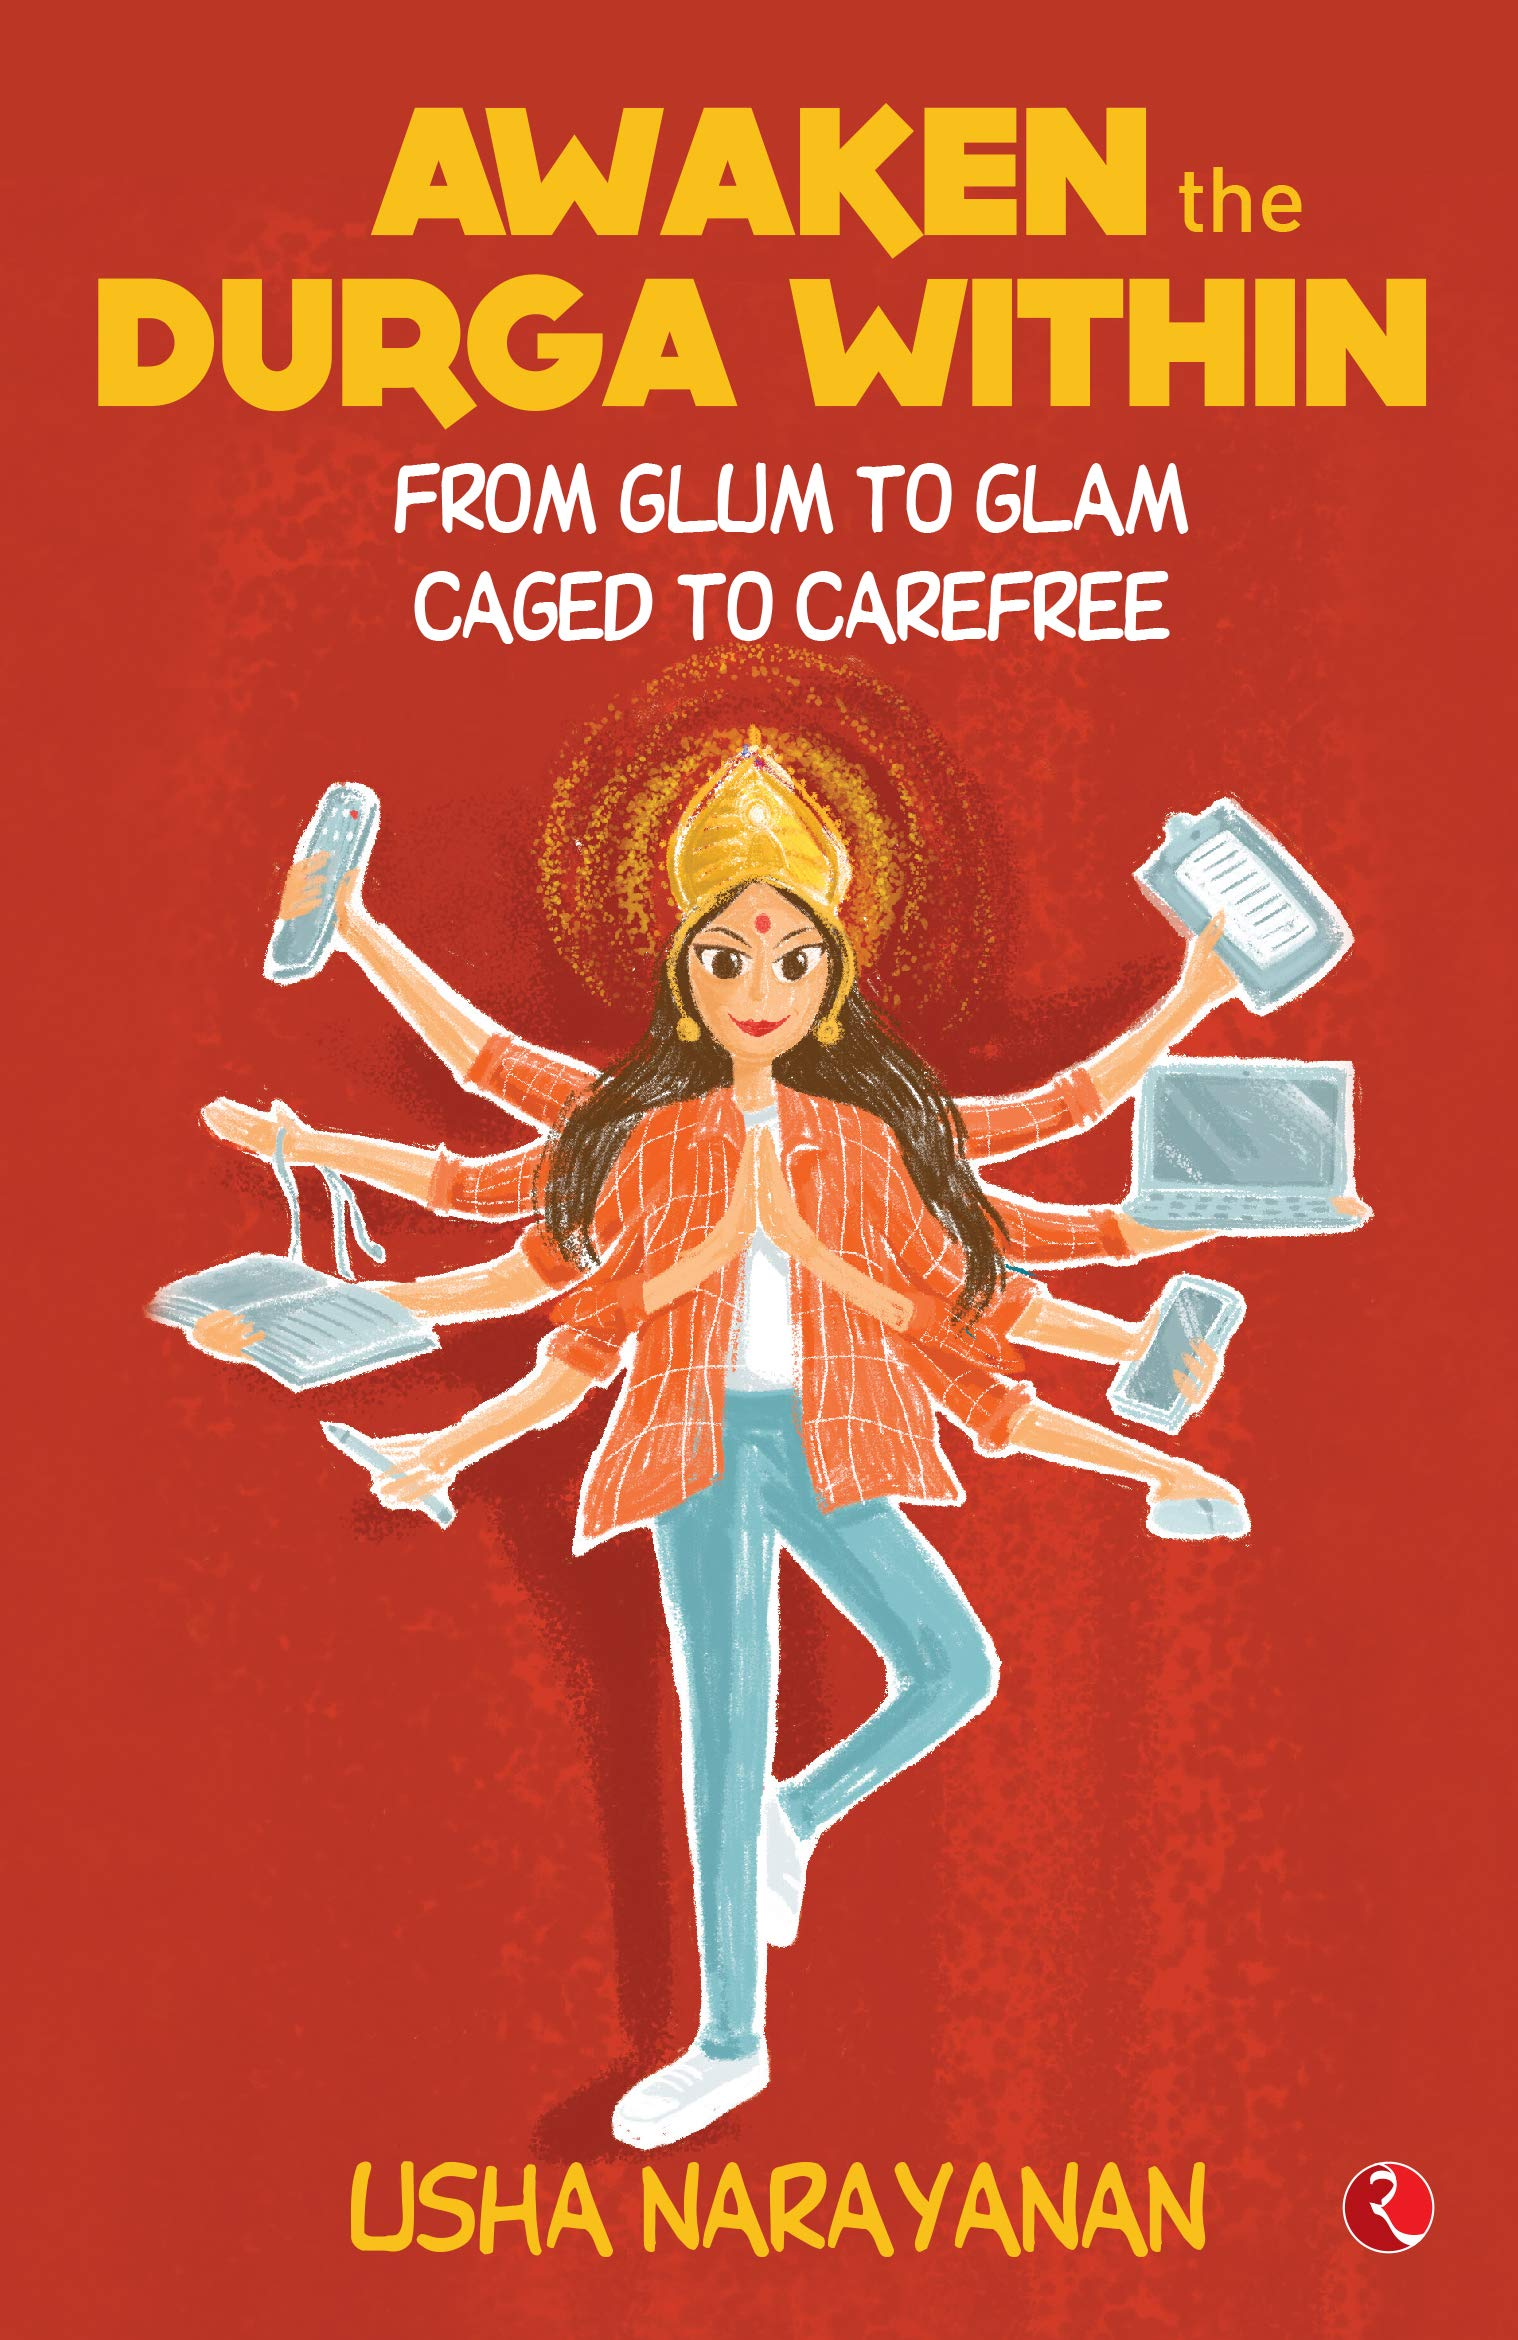 Awaken the Durga Within: From Glum to Glam, Caged to Carefre